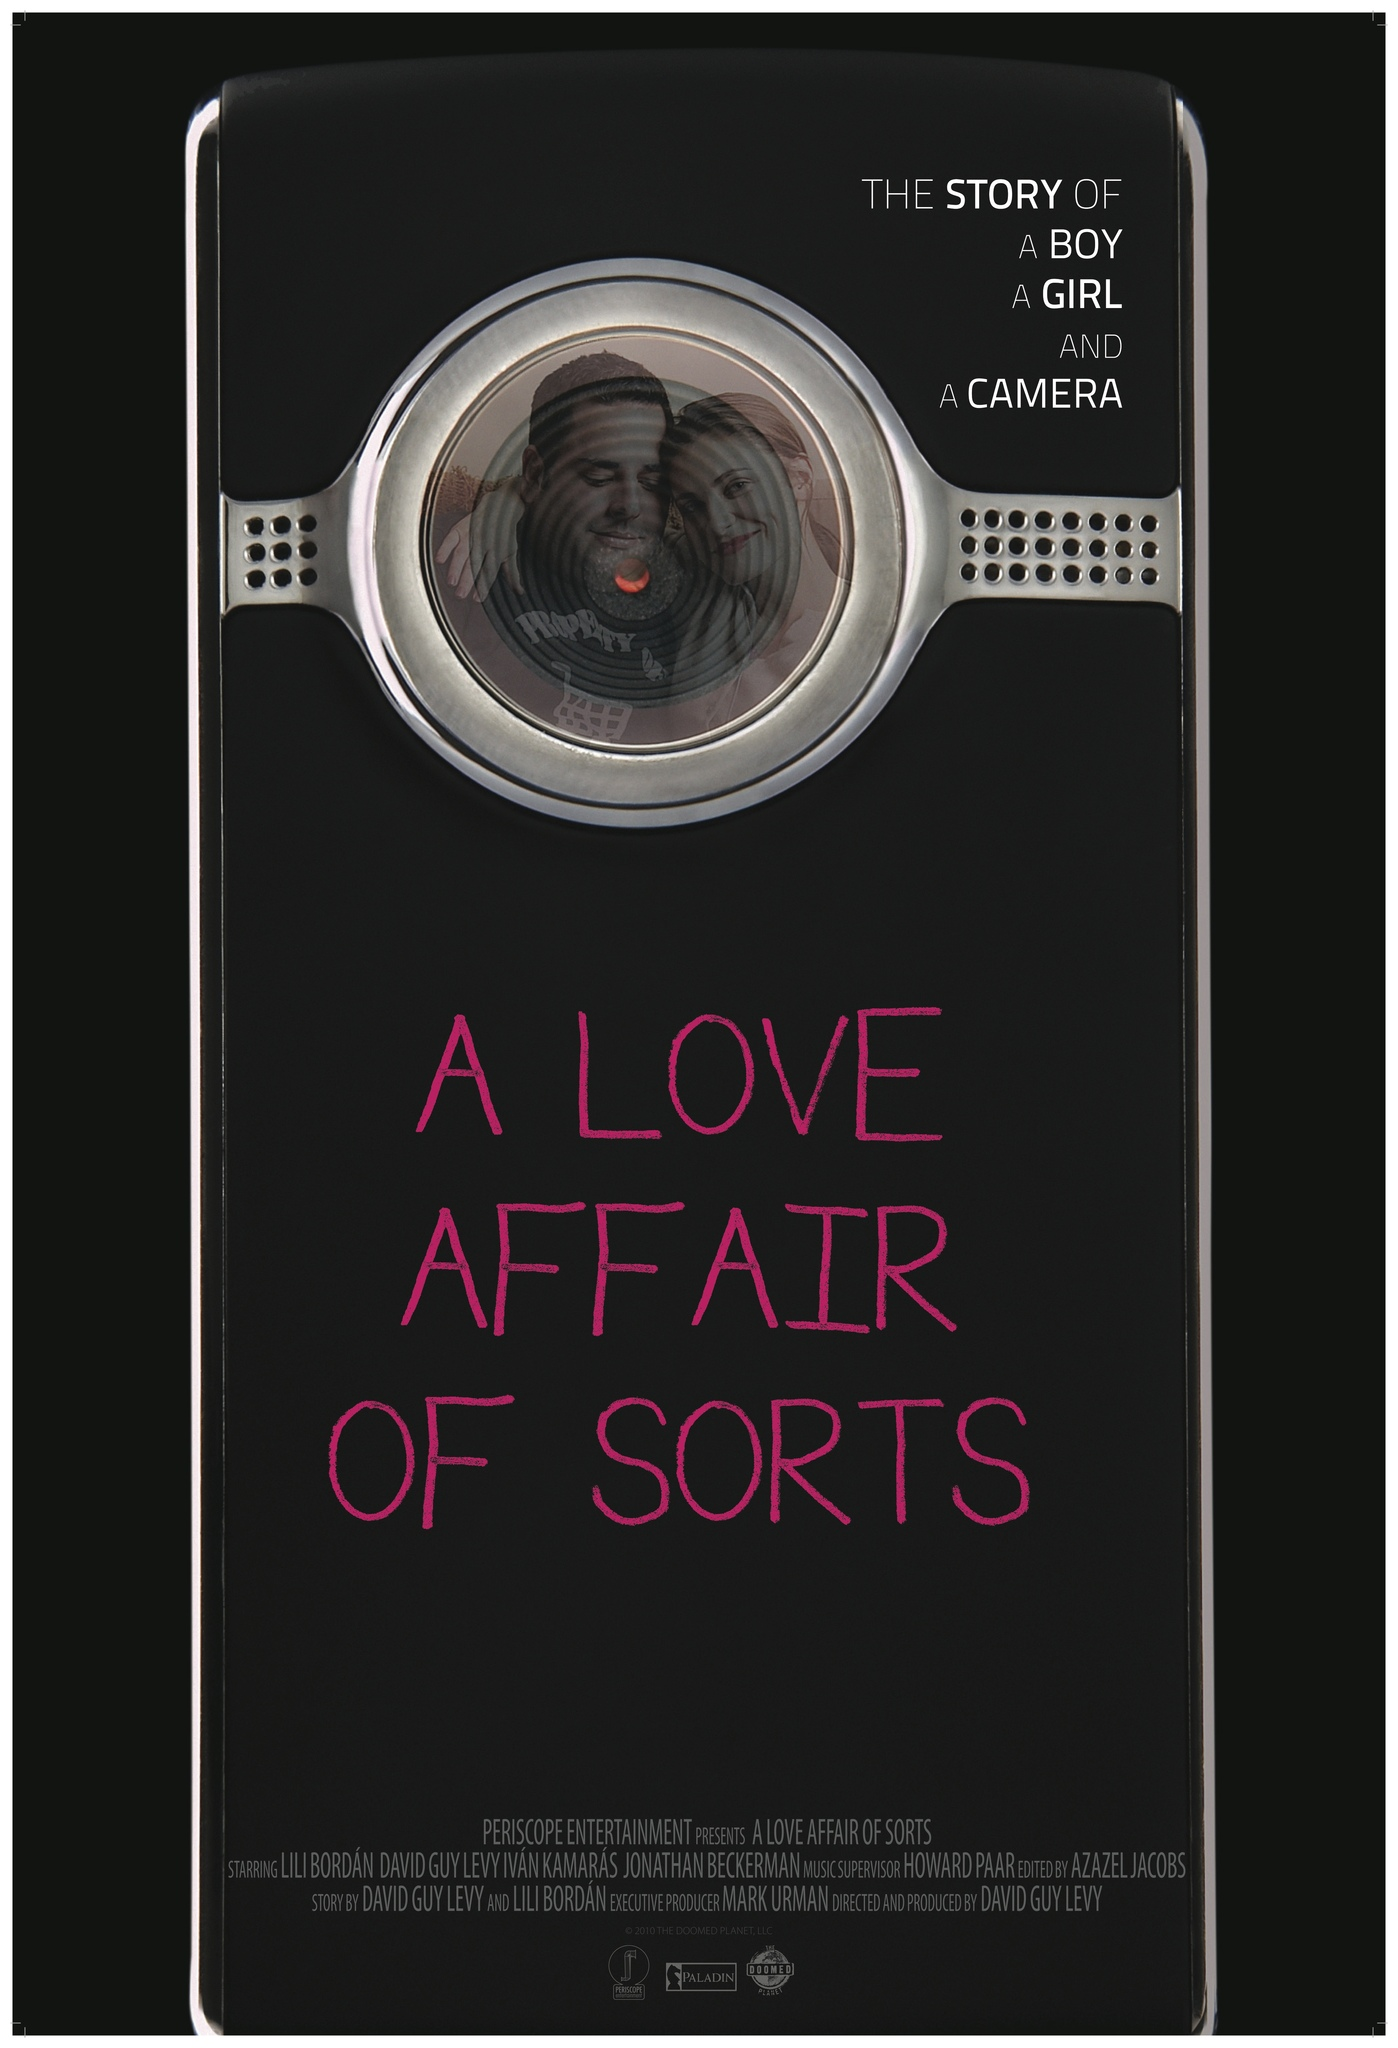 A LOVE AFFAIR OF SORTS (2011) - Blurring the edges between reality and fiction, and in an era where we all live in public to a certain extent, A LOVE AFFAIR OF SORTS is a modern twist on a love affair in the digital age. The first feature film to be shot entirely on a flip camera, its narrative follows two lonely strangers in modern day Los Angeles, during the holiday season. The film begins with David, a painter, and Enci, a Hungarian nanny, who meet in a bookstore when he catches her shoplifting on his ever-present flip camera. As they start a tentative relationship, he captures it all on his digital camera, though nothing about the situation is as straightforward as it seems. Things are complicated further with the addition of Enci's boyfriend, Boris (Ivan Kamaras), and David's brutally honest friend, Jonathan. Chronicling the couple's desire to be constantly filmed, and their need to really connect in the lonely landscape of Los Angeles at Christmastime, A LOVE AFFAIR OF SORTS takes a wry look at the way technology brings us together while also keeping us at a distance, and how it may have changed what it is to love and be loved.